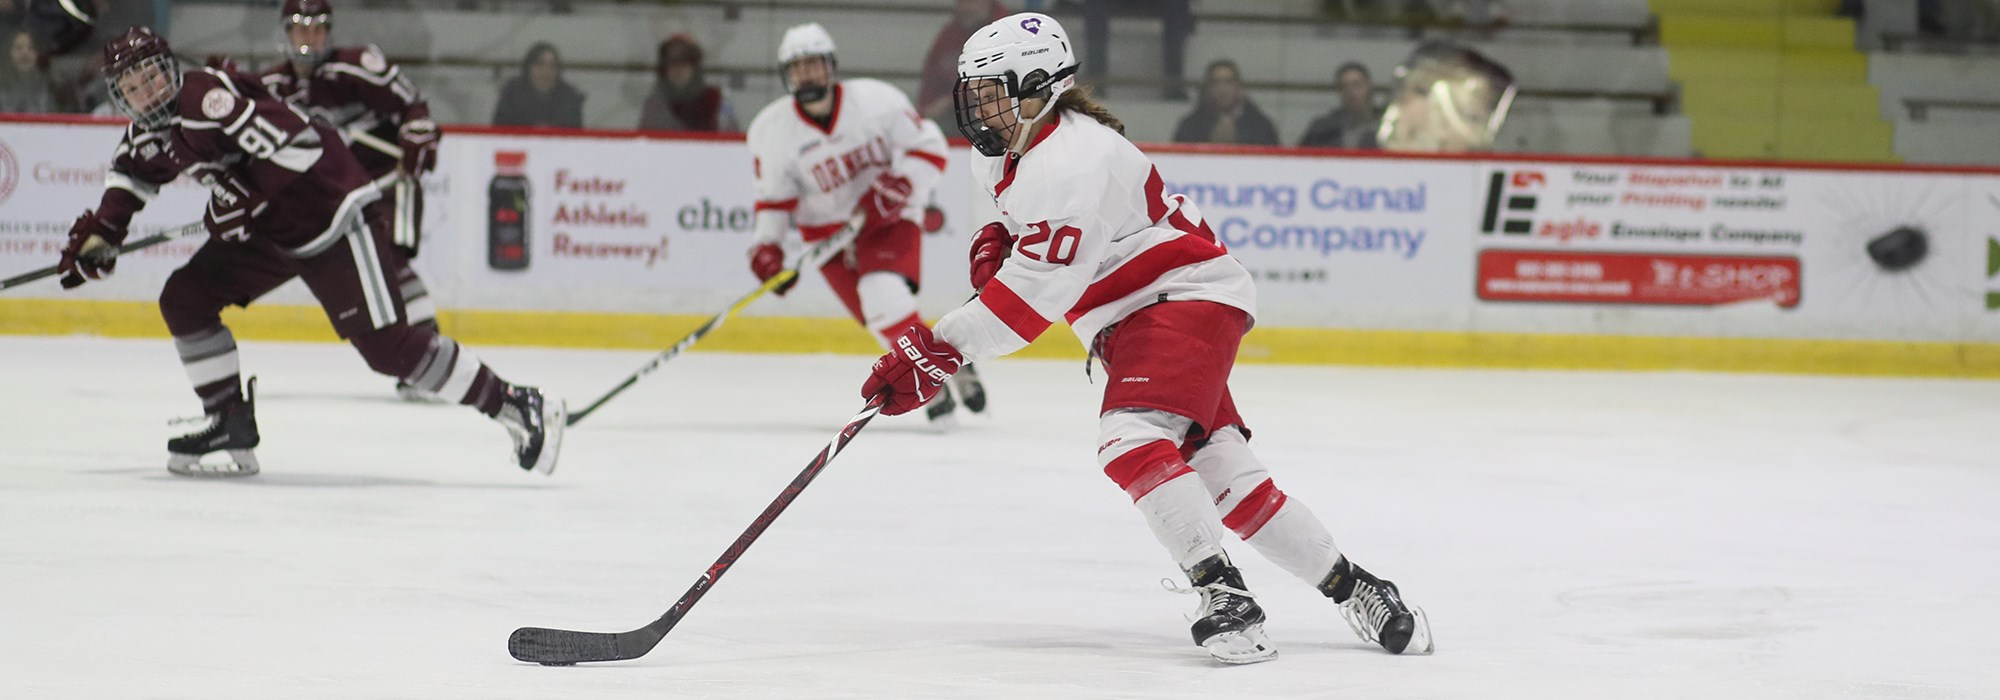 O'Neill's Penalty Shot Goal Lifts Cornell To Game 1 Win Over Colgate